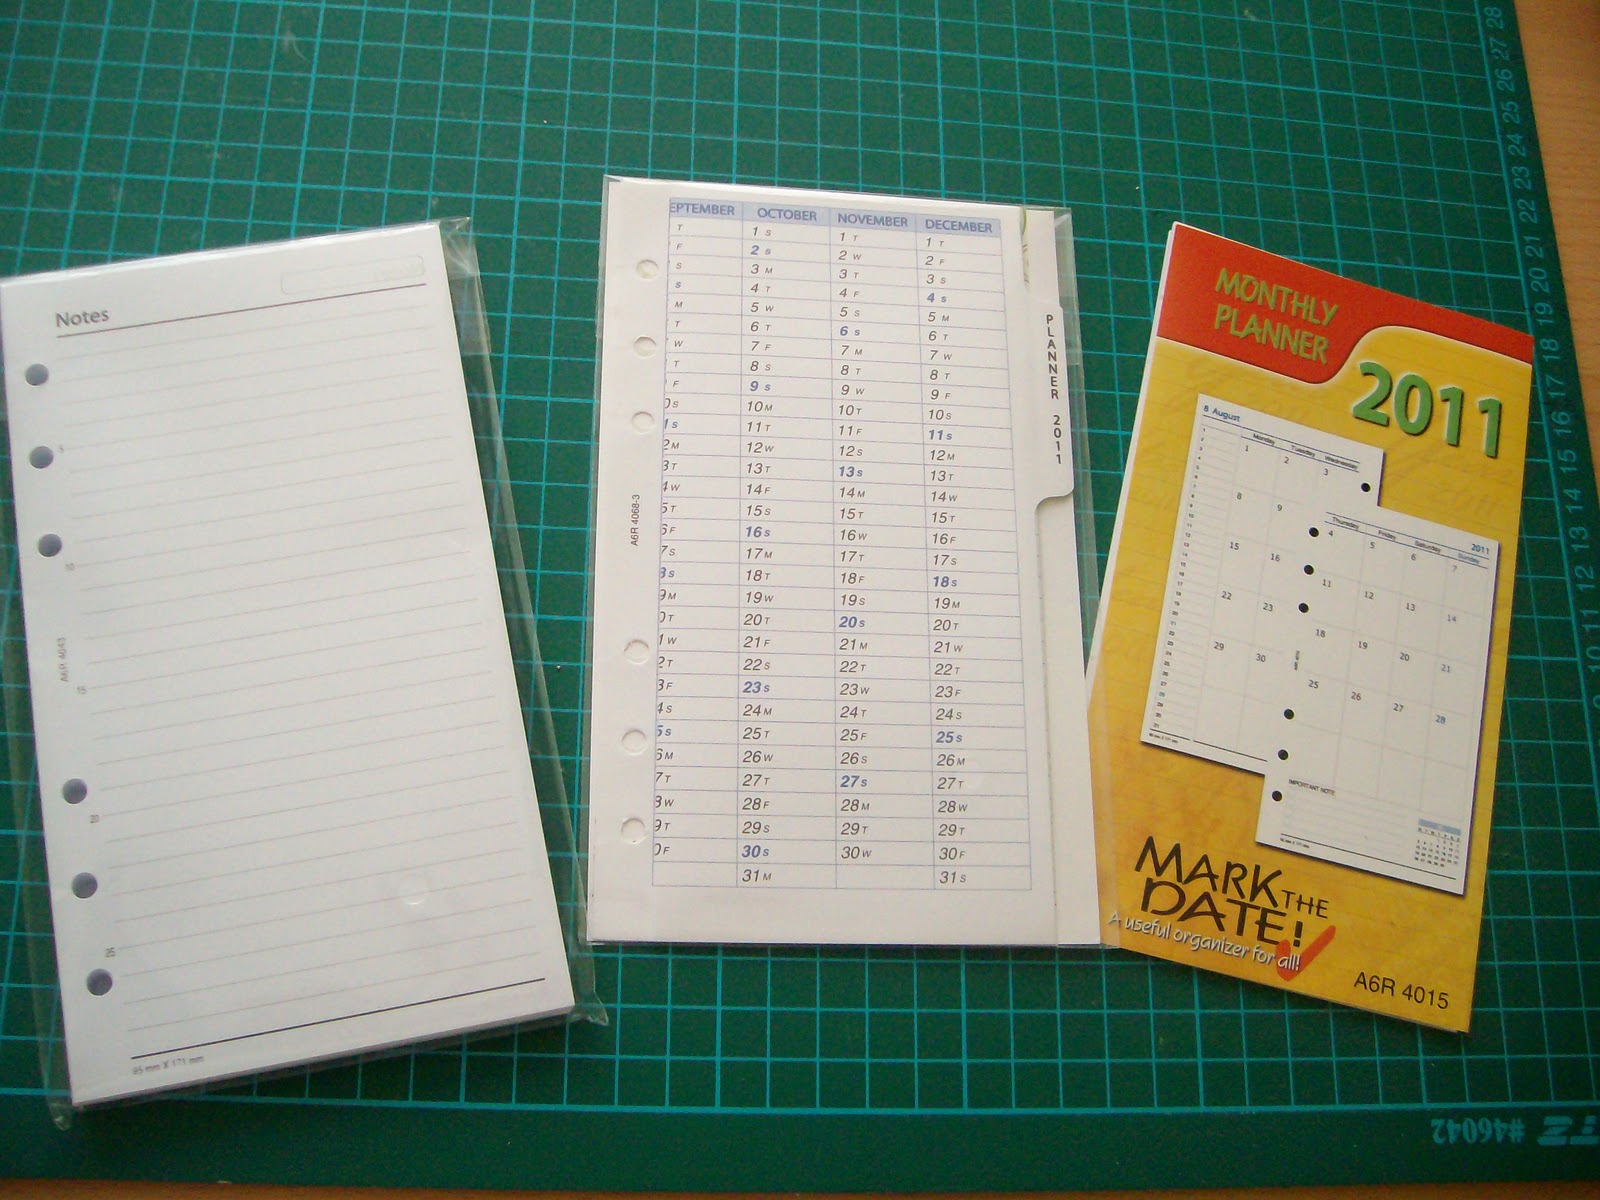 Blank pages, planner 2011, monthly calender pages